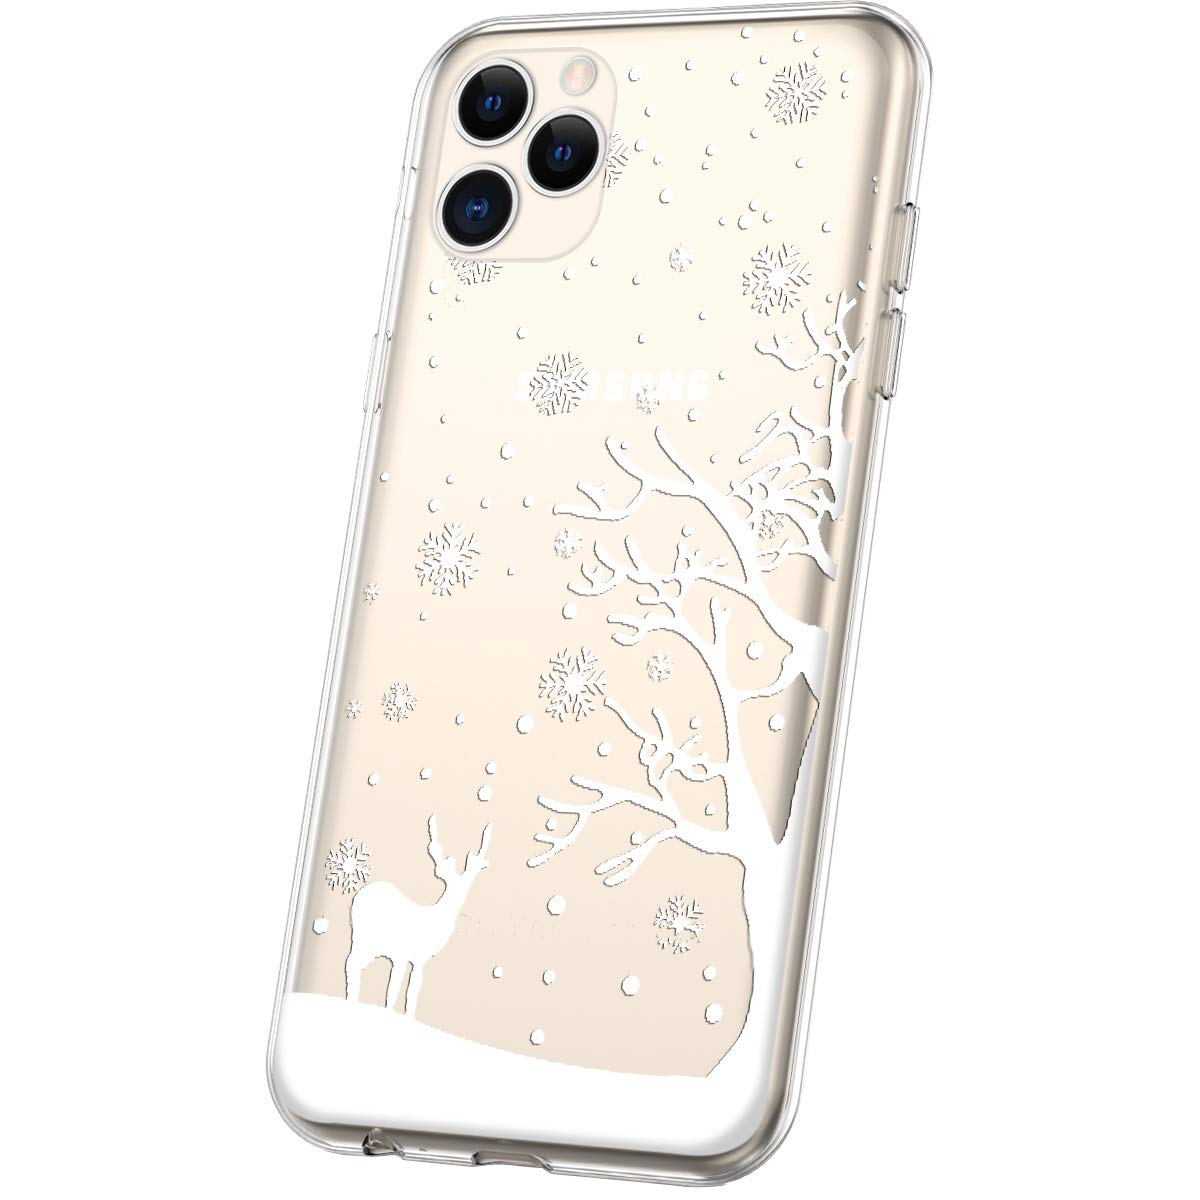 Herbests Compatible avec iPhone 11 Pro Max Coque TPU Silicone Transparente Coque avec No/ël Motif Design Antichoc Housse de Protection Back Cover Souple Case Transparente comme Cristal,Pure